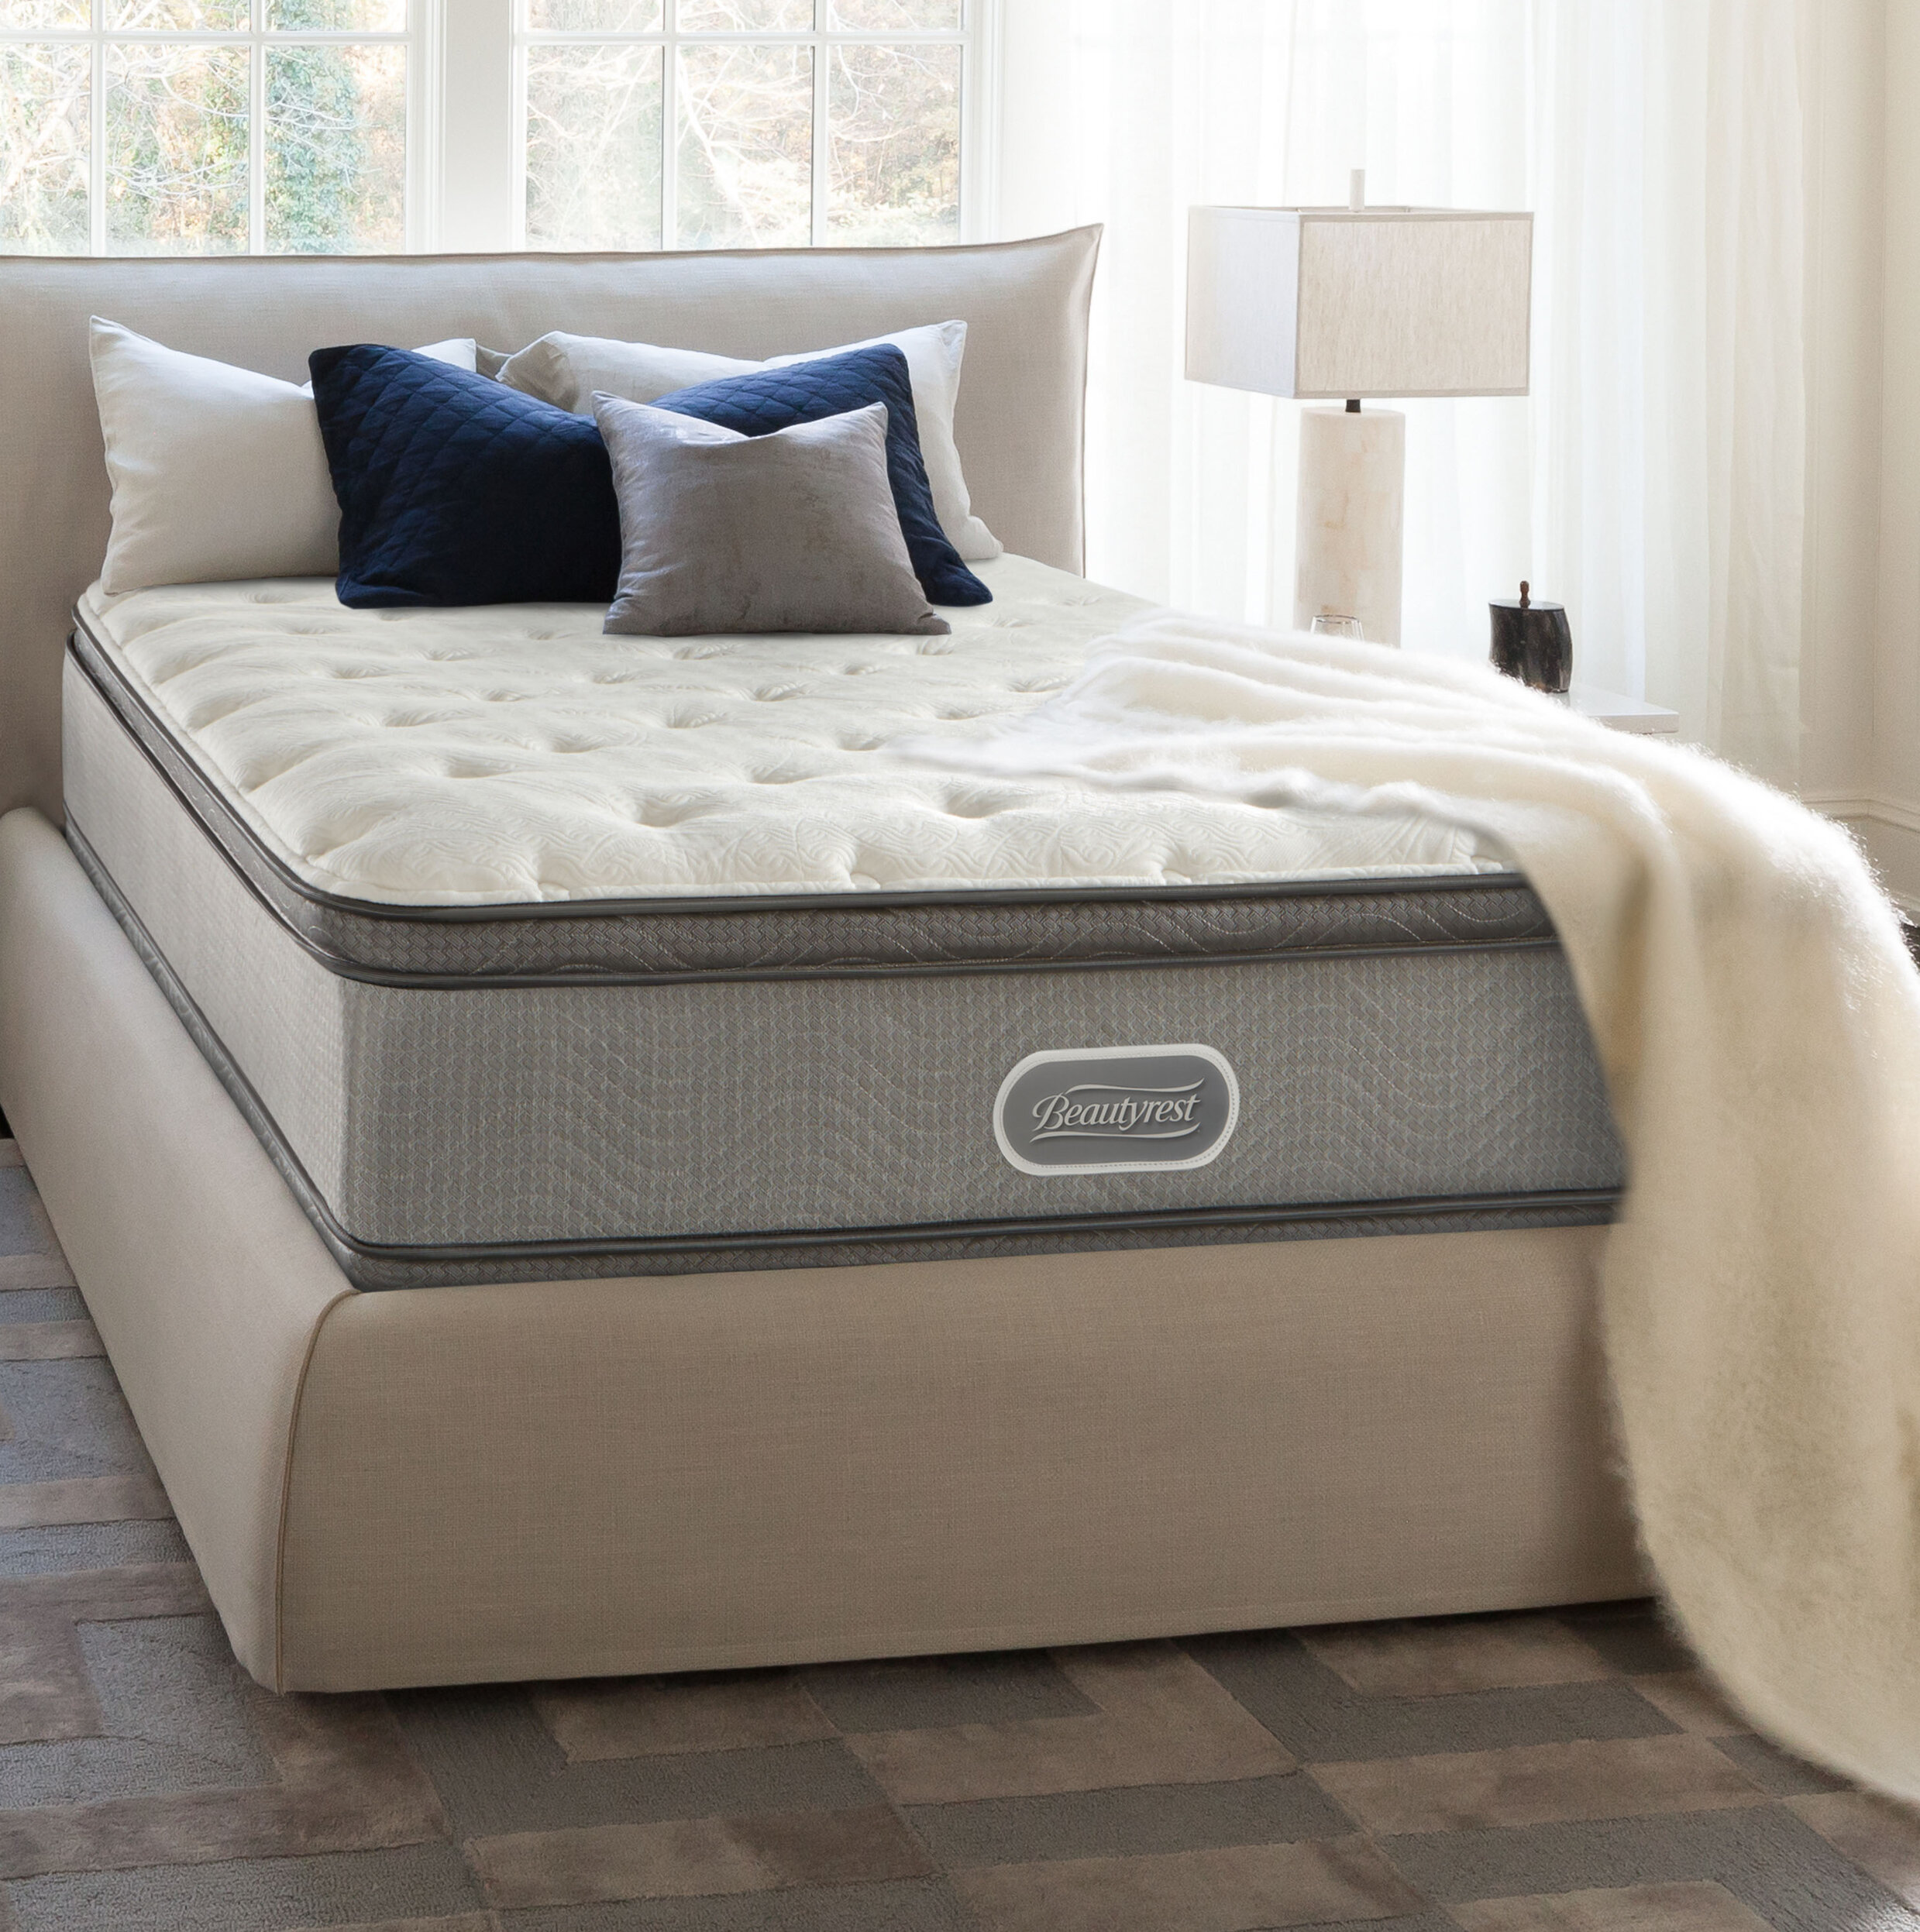 size mattress box spring king and set top kohls topper cheap full pillow